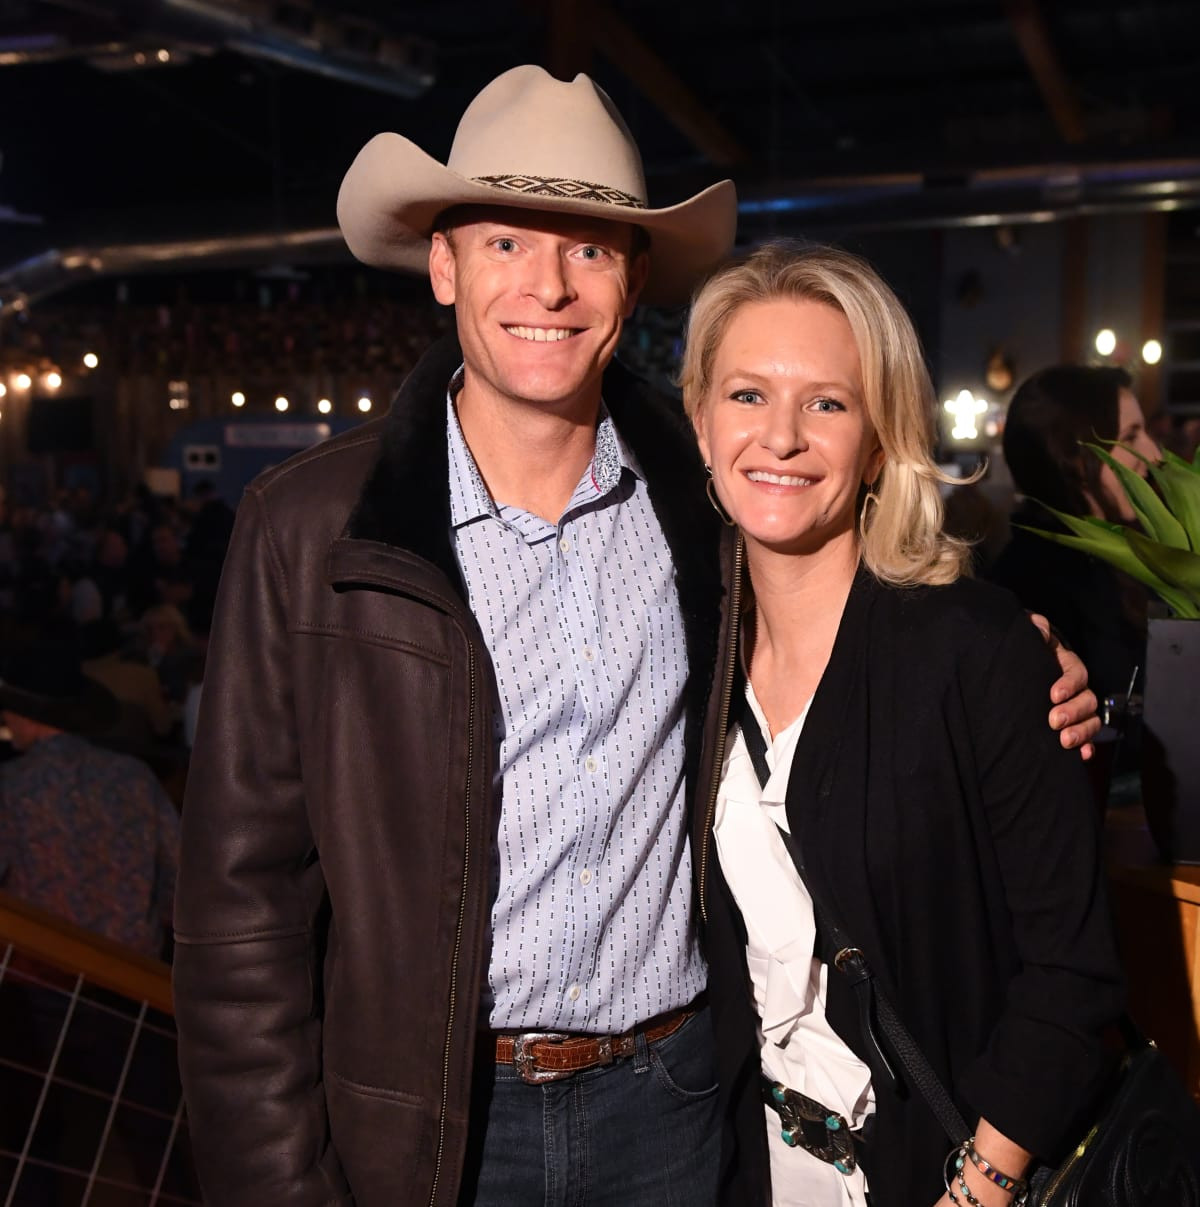 Houston, Kick Up Your Boots for Kids event, February 2018, Emerson Hankamer, Gabrielle Welch